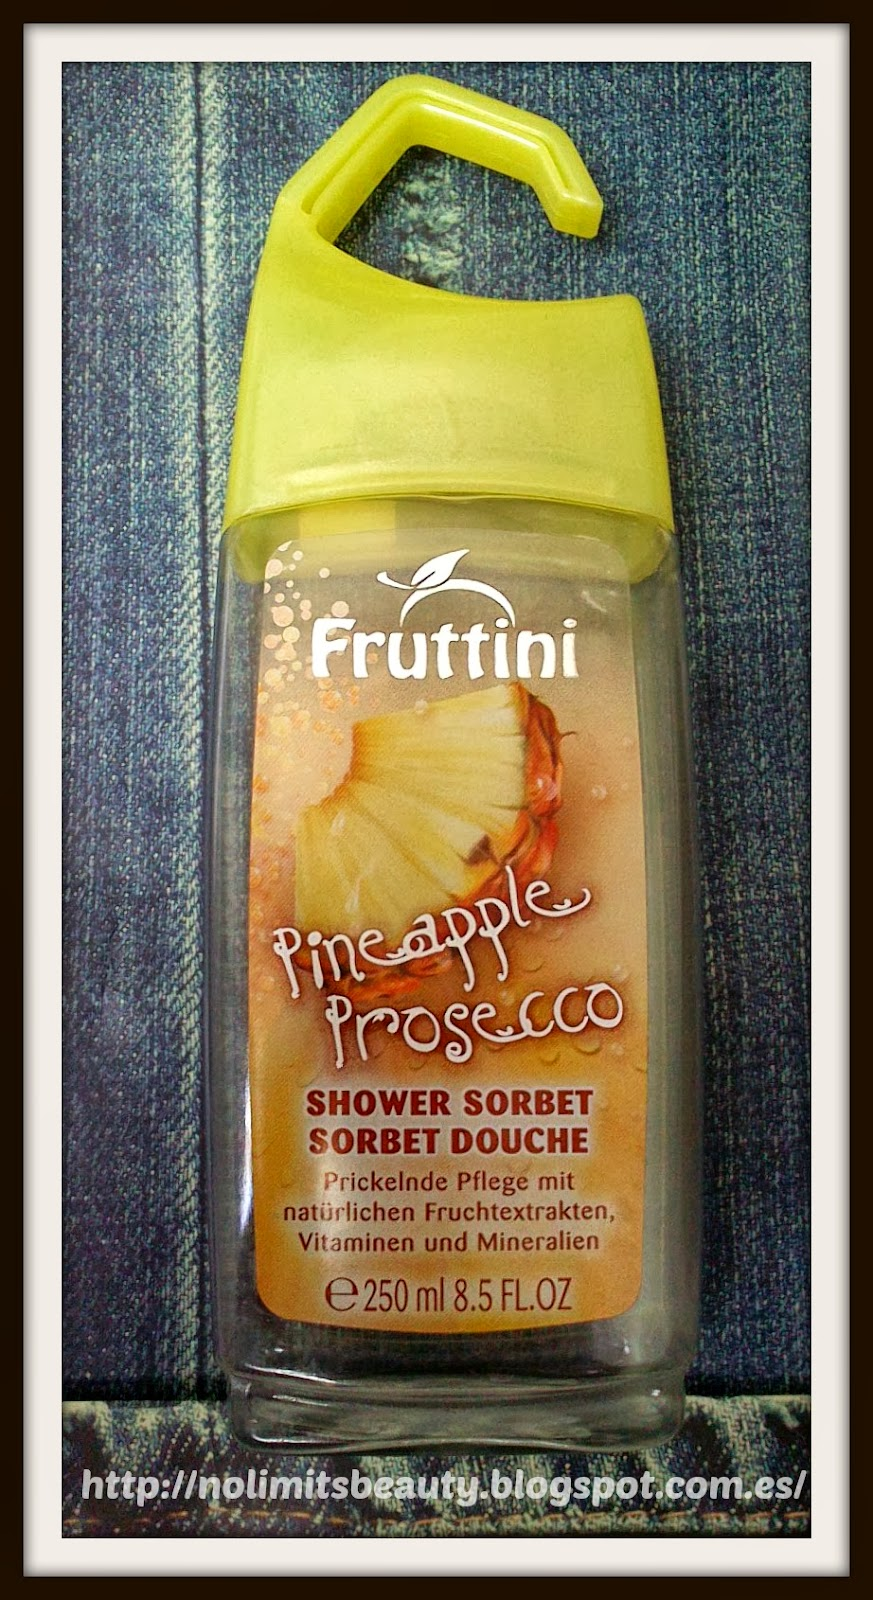 Pineapple & Prosecco Shower Sorbet - Fruttini